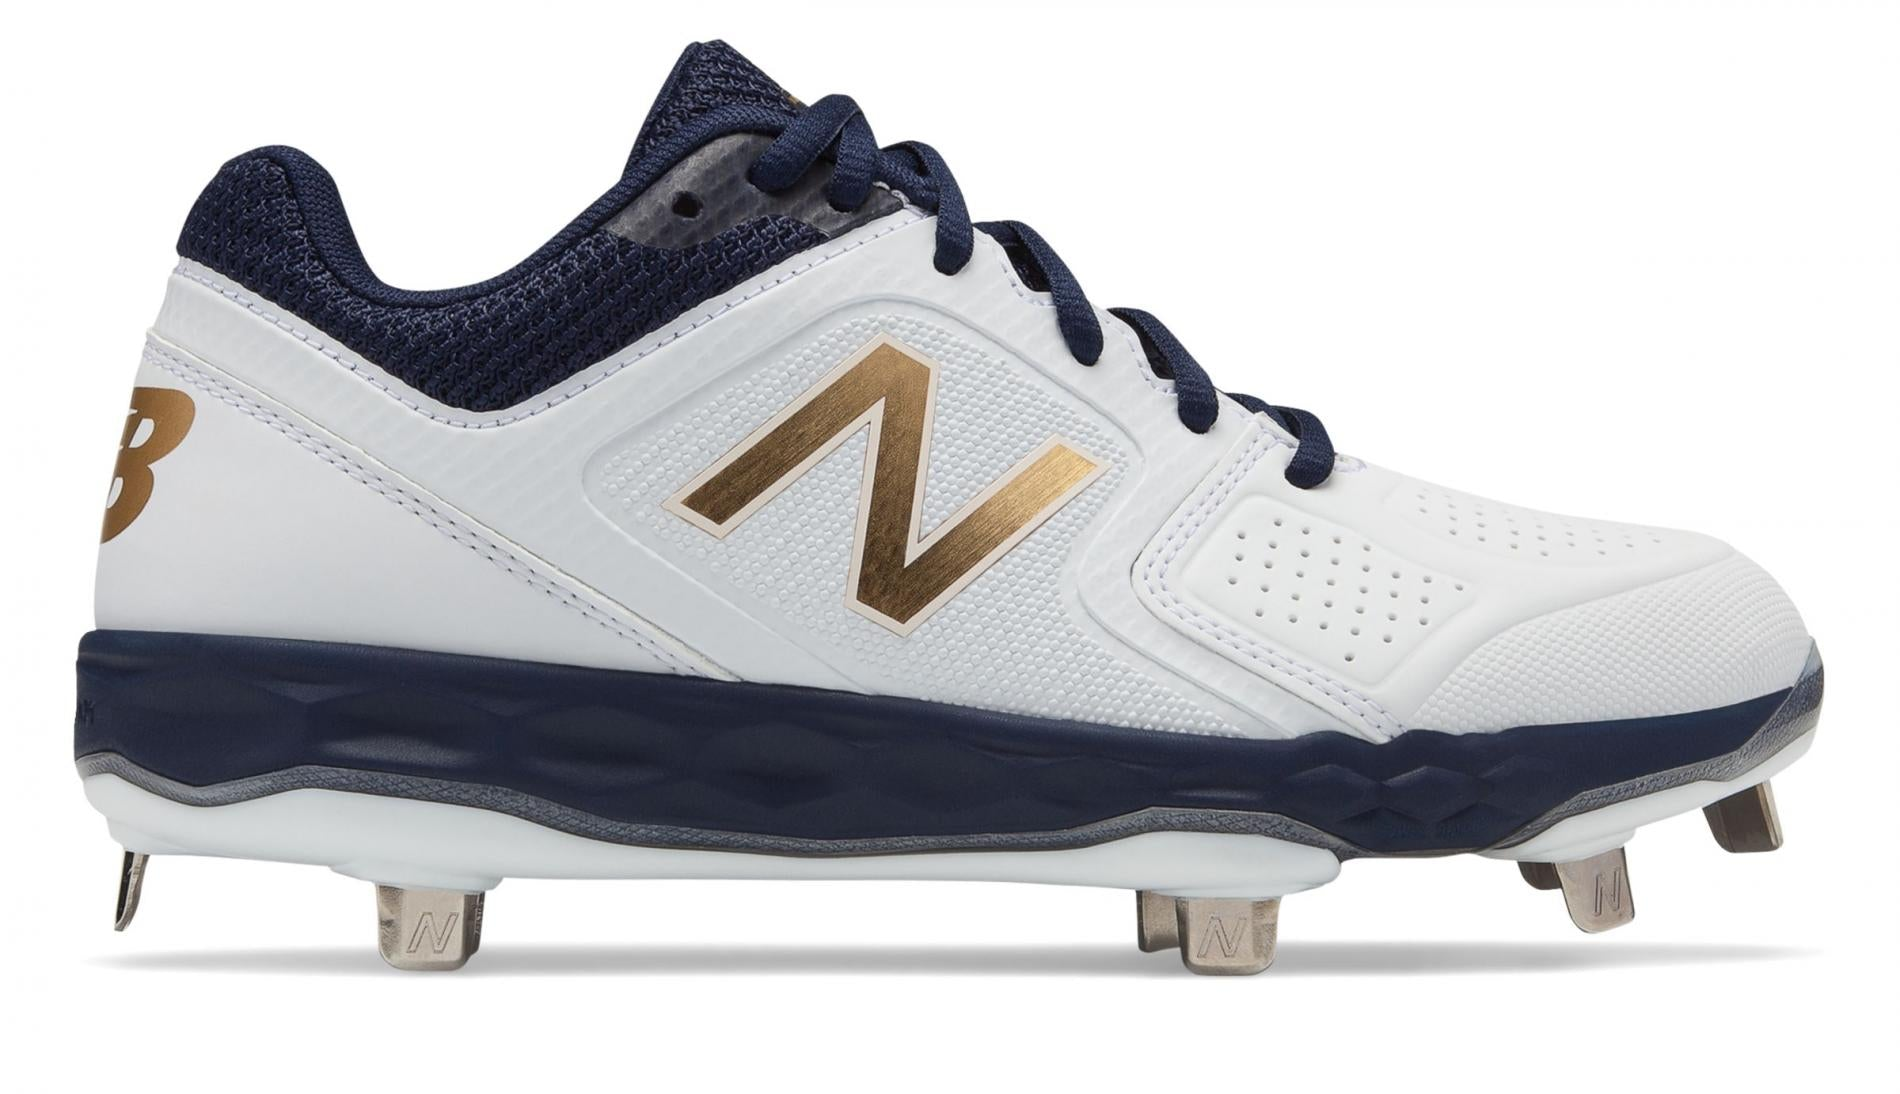 New Balance Velo Metal Cleats - Women's